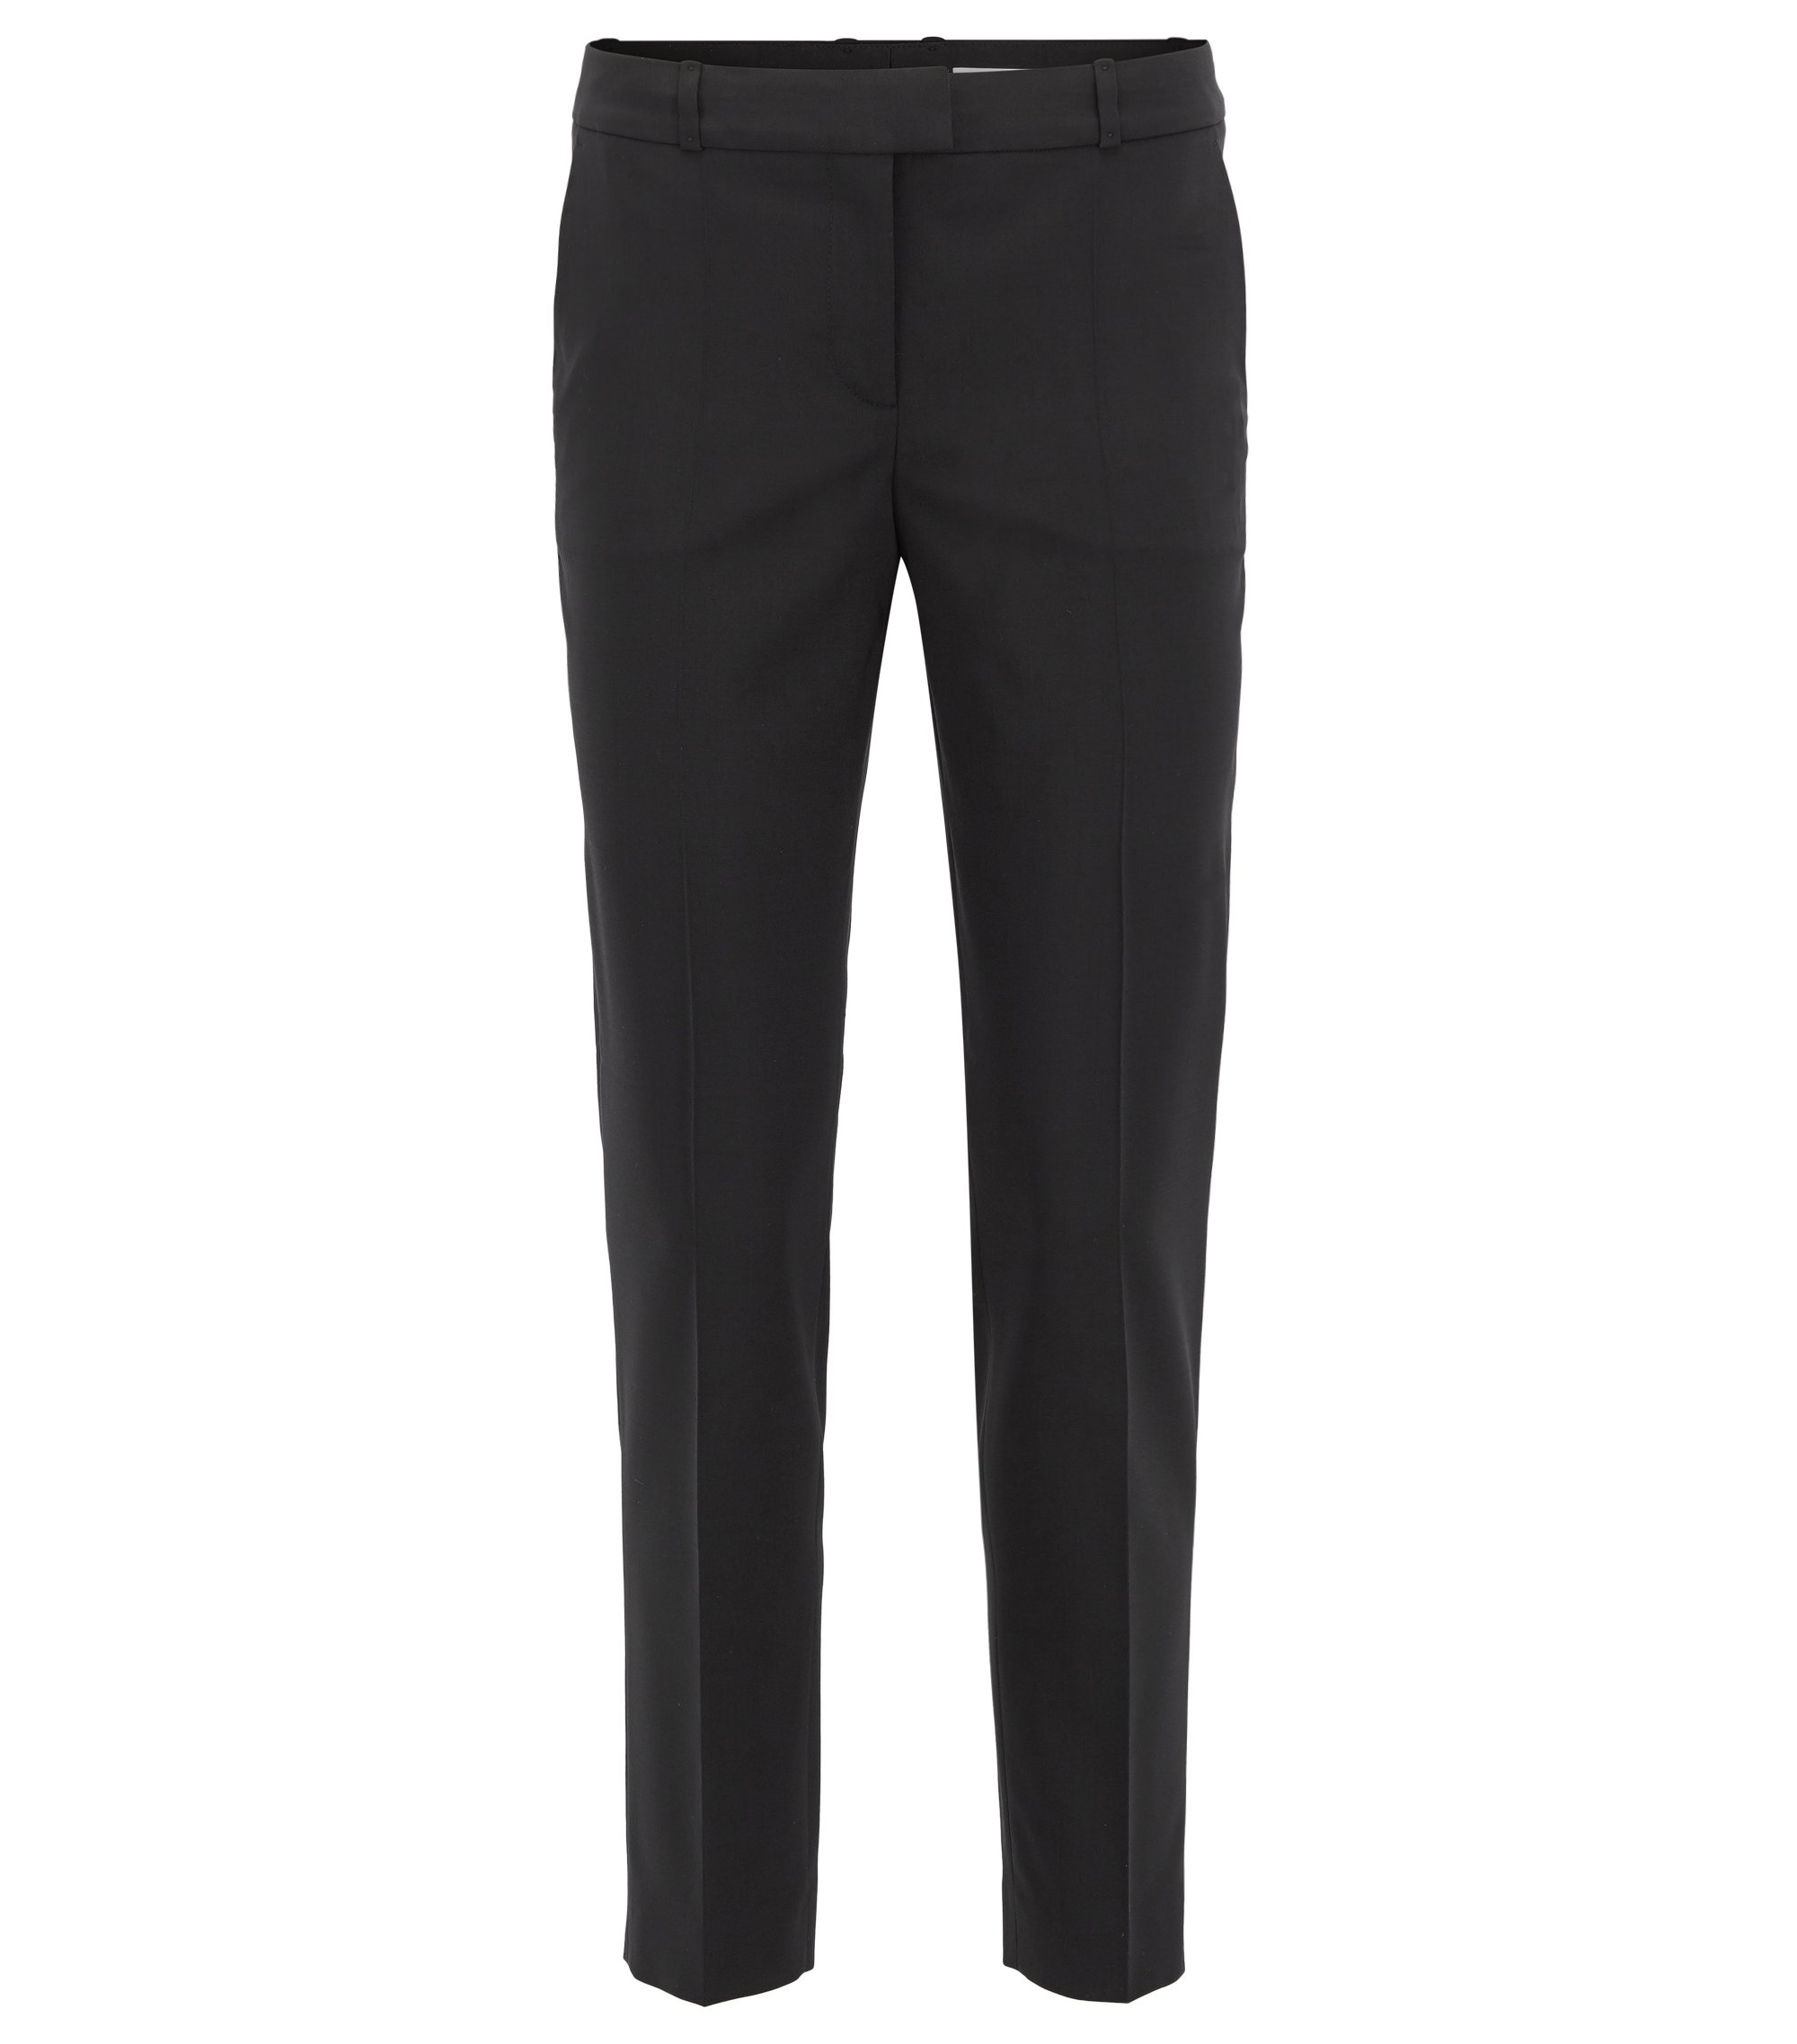 Pantalon Relaxed Fit en laine vierge stretch, Noir